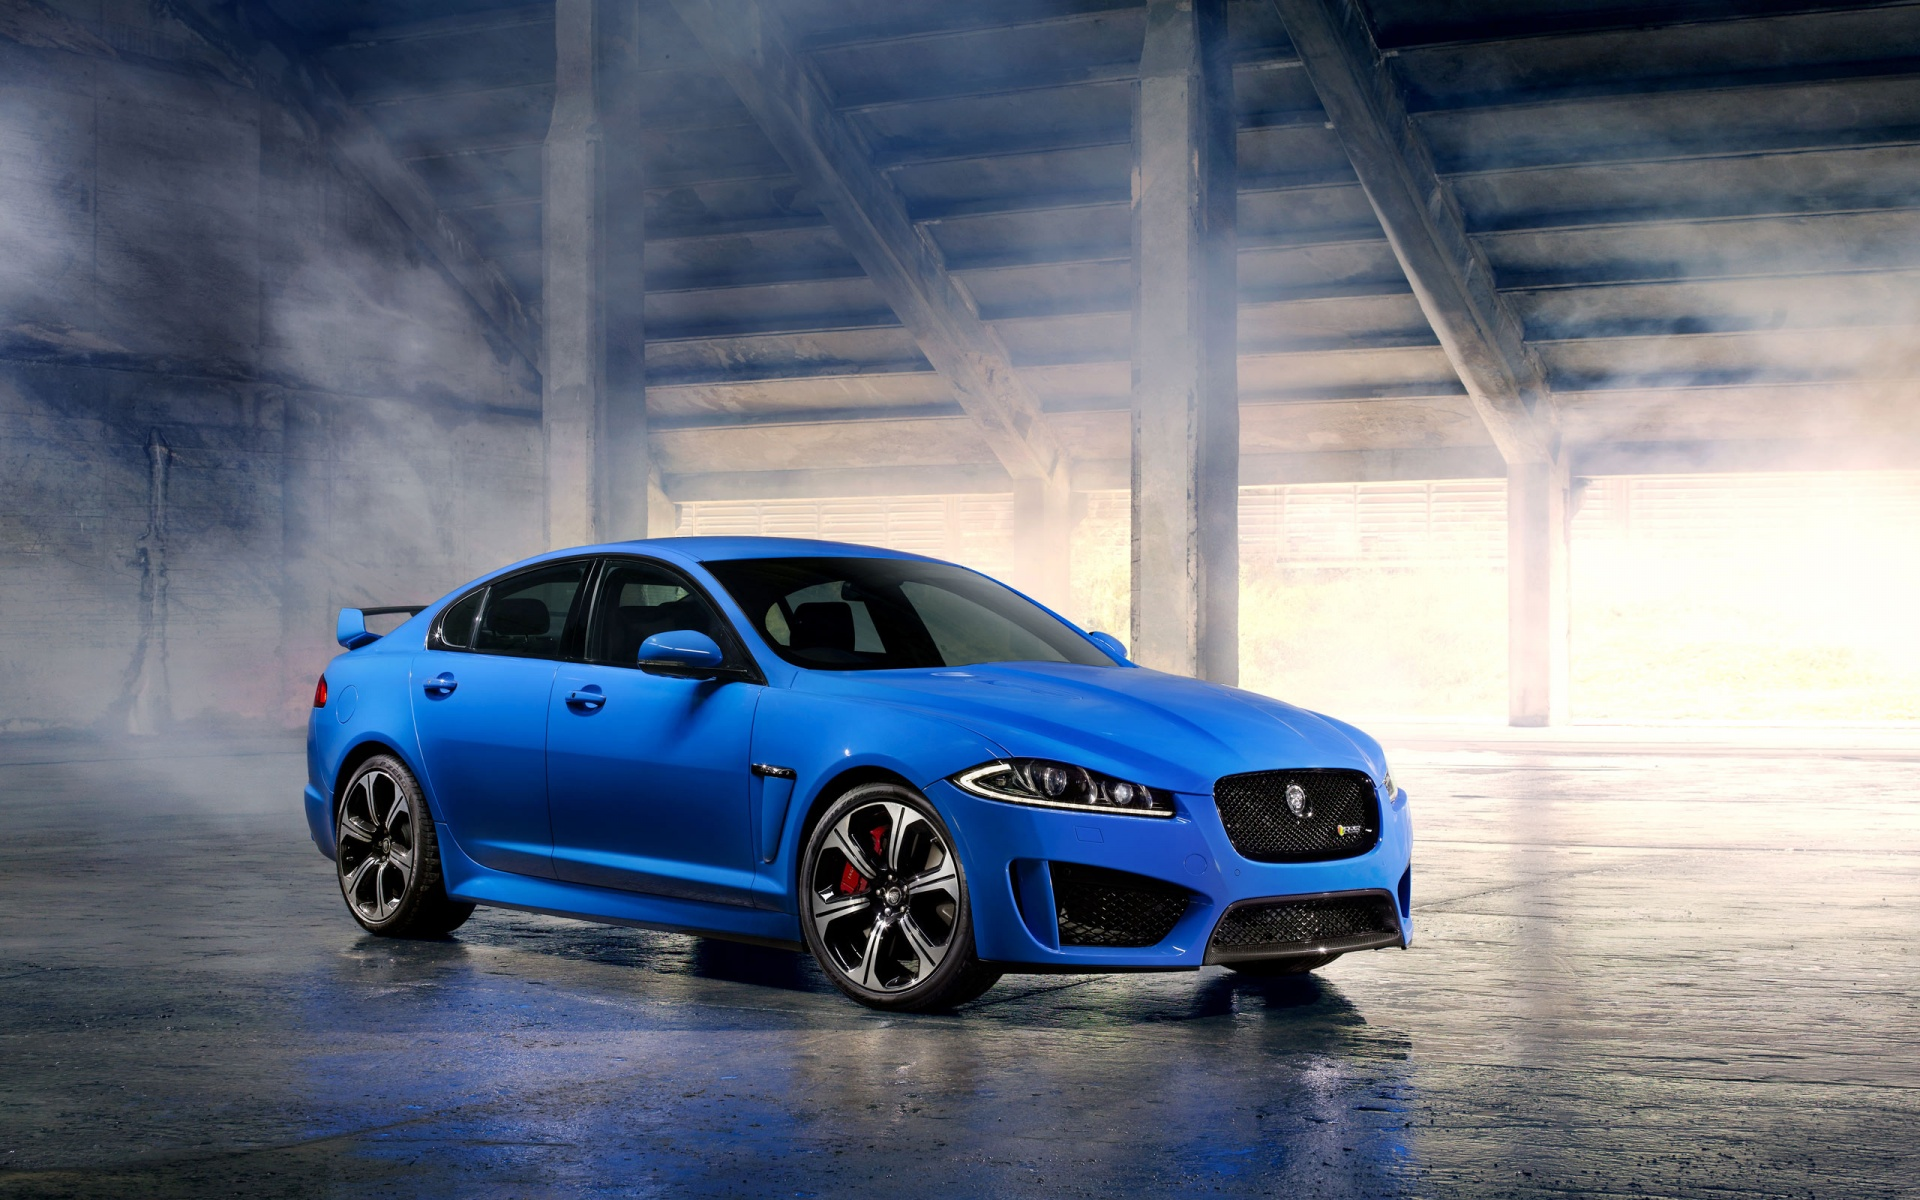 2014 Jaguar Car Wallpapers